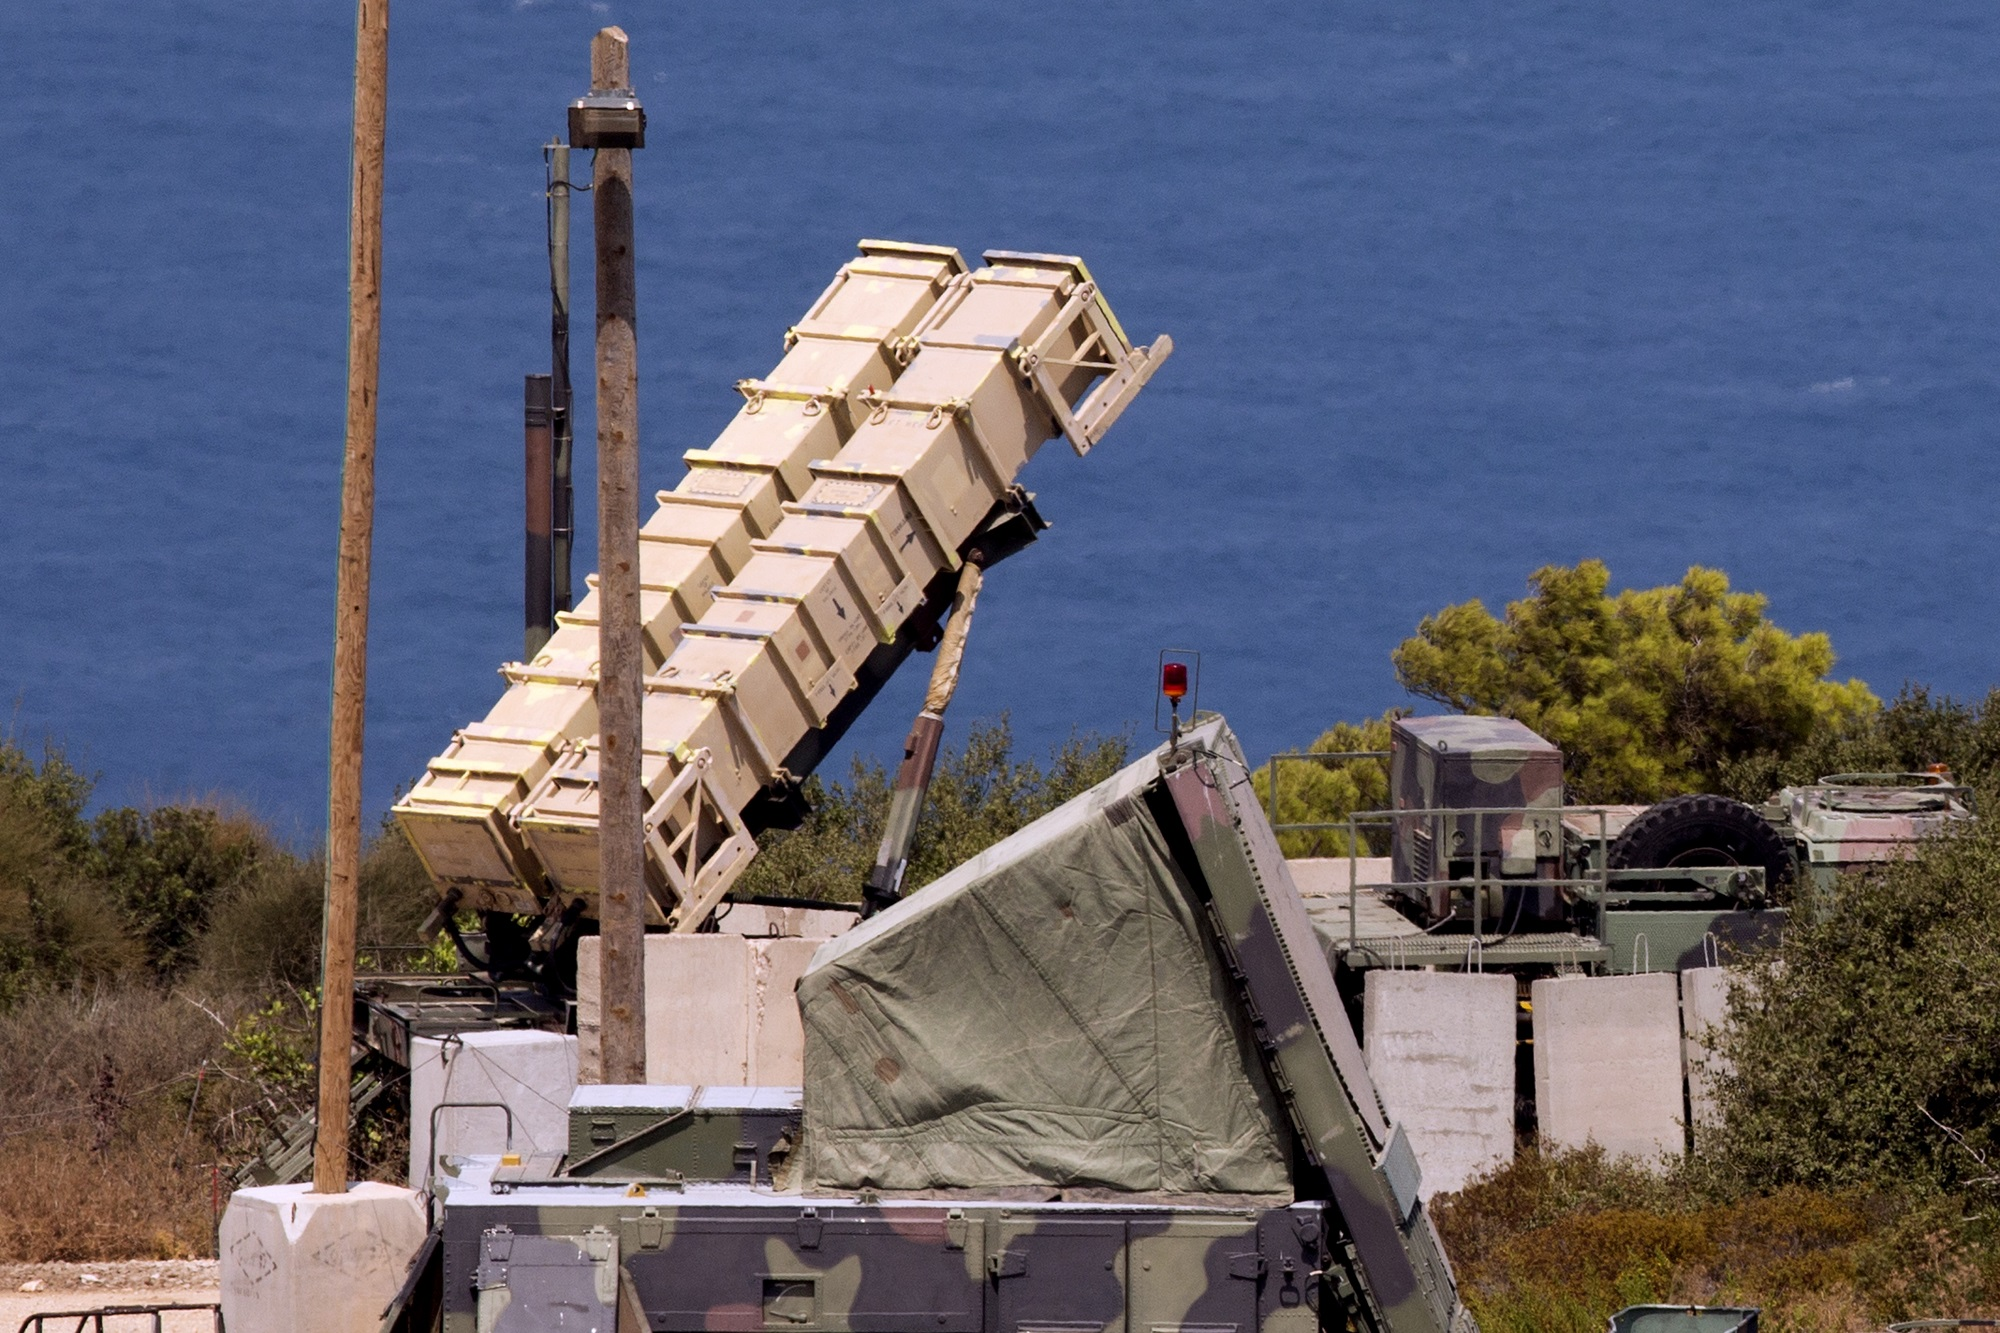 Israel uses Patriot missile to shoot down drone